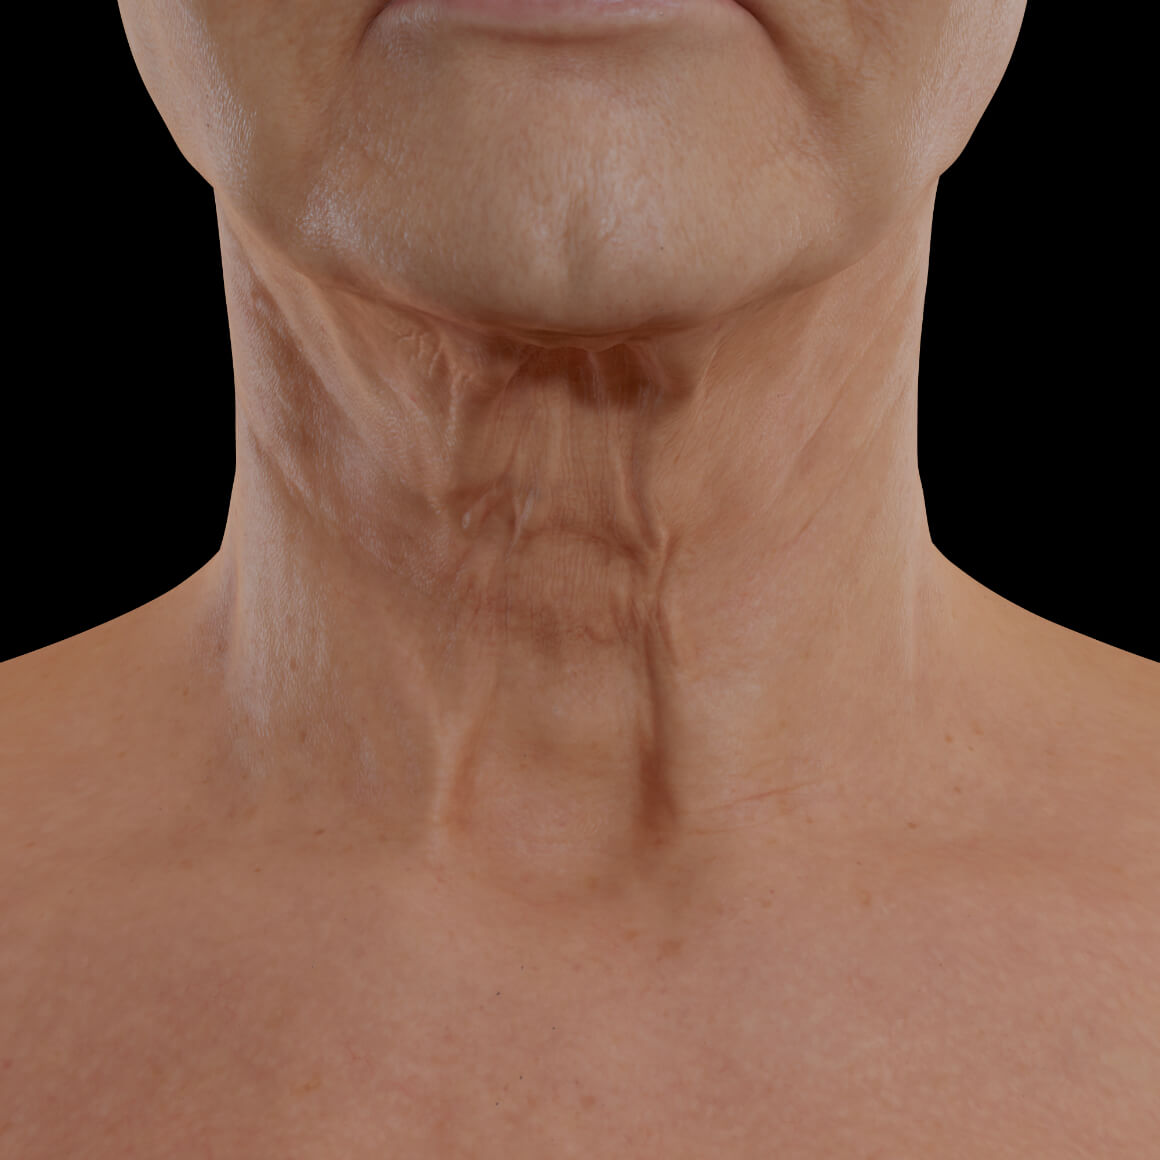 Female patient from Clinique Chloé facing front showing neck skin laxity